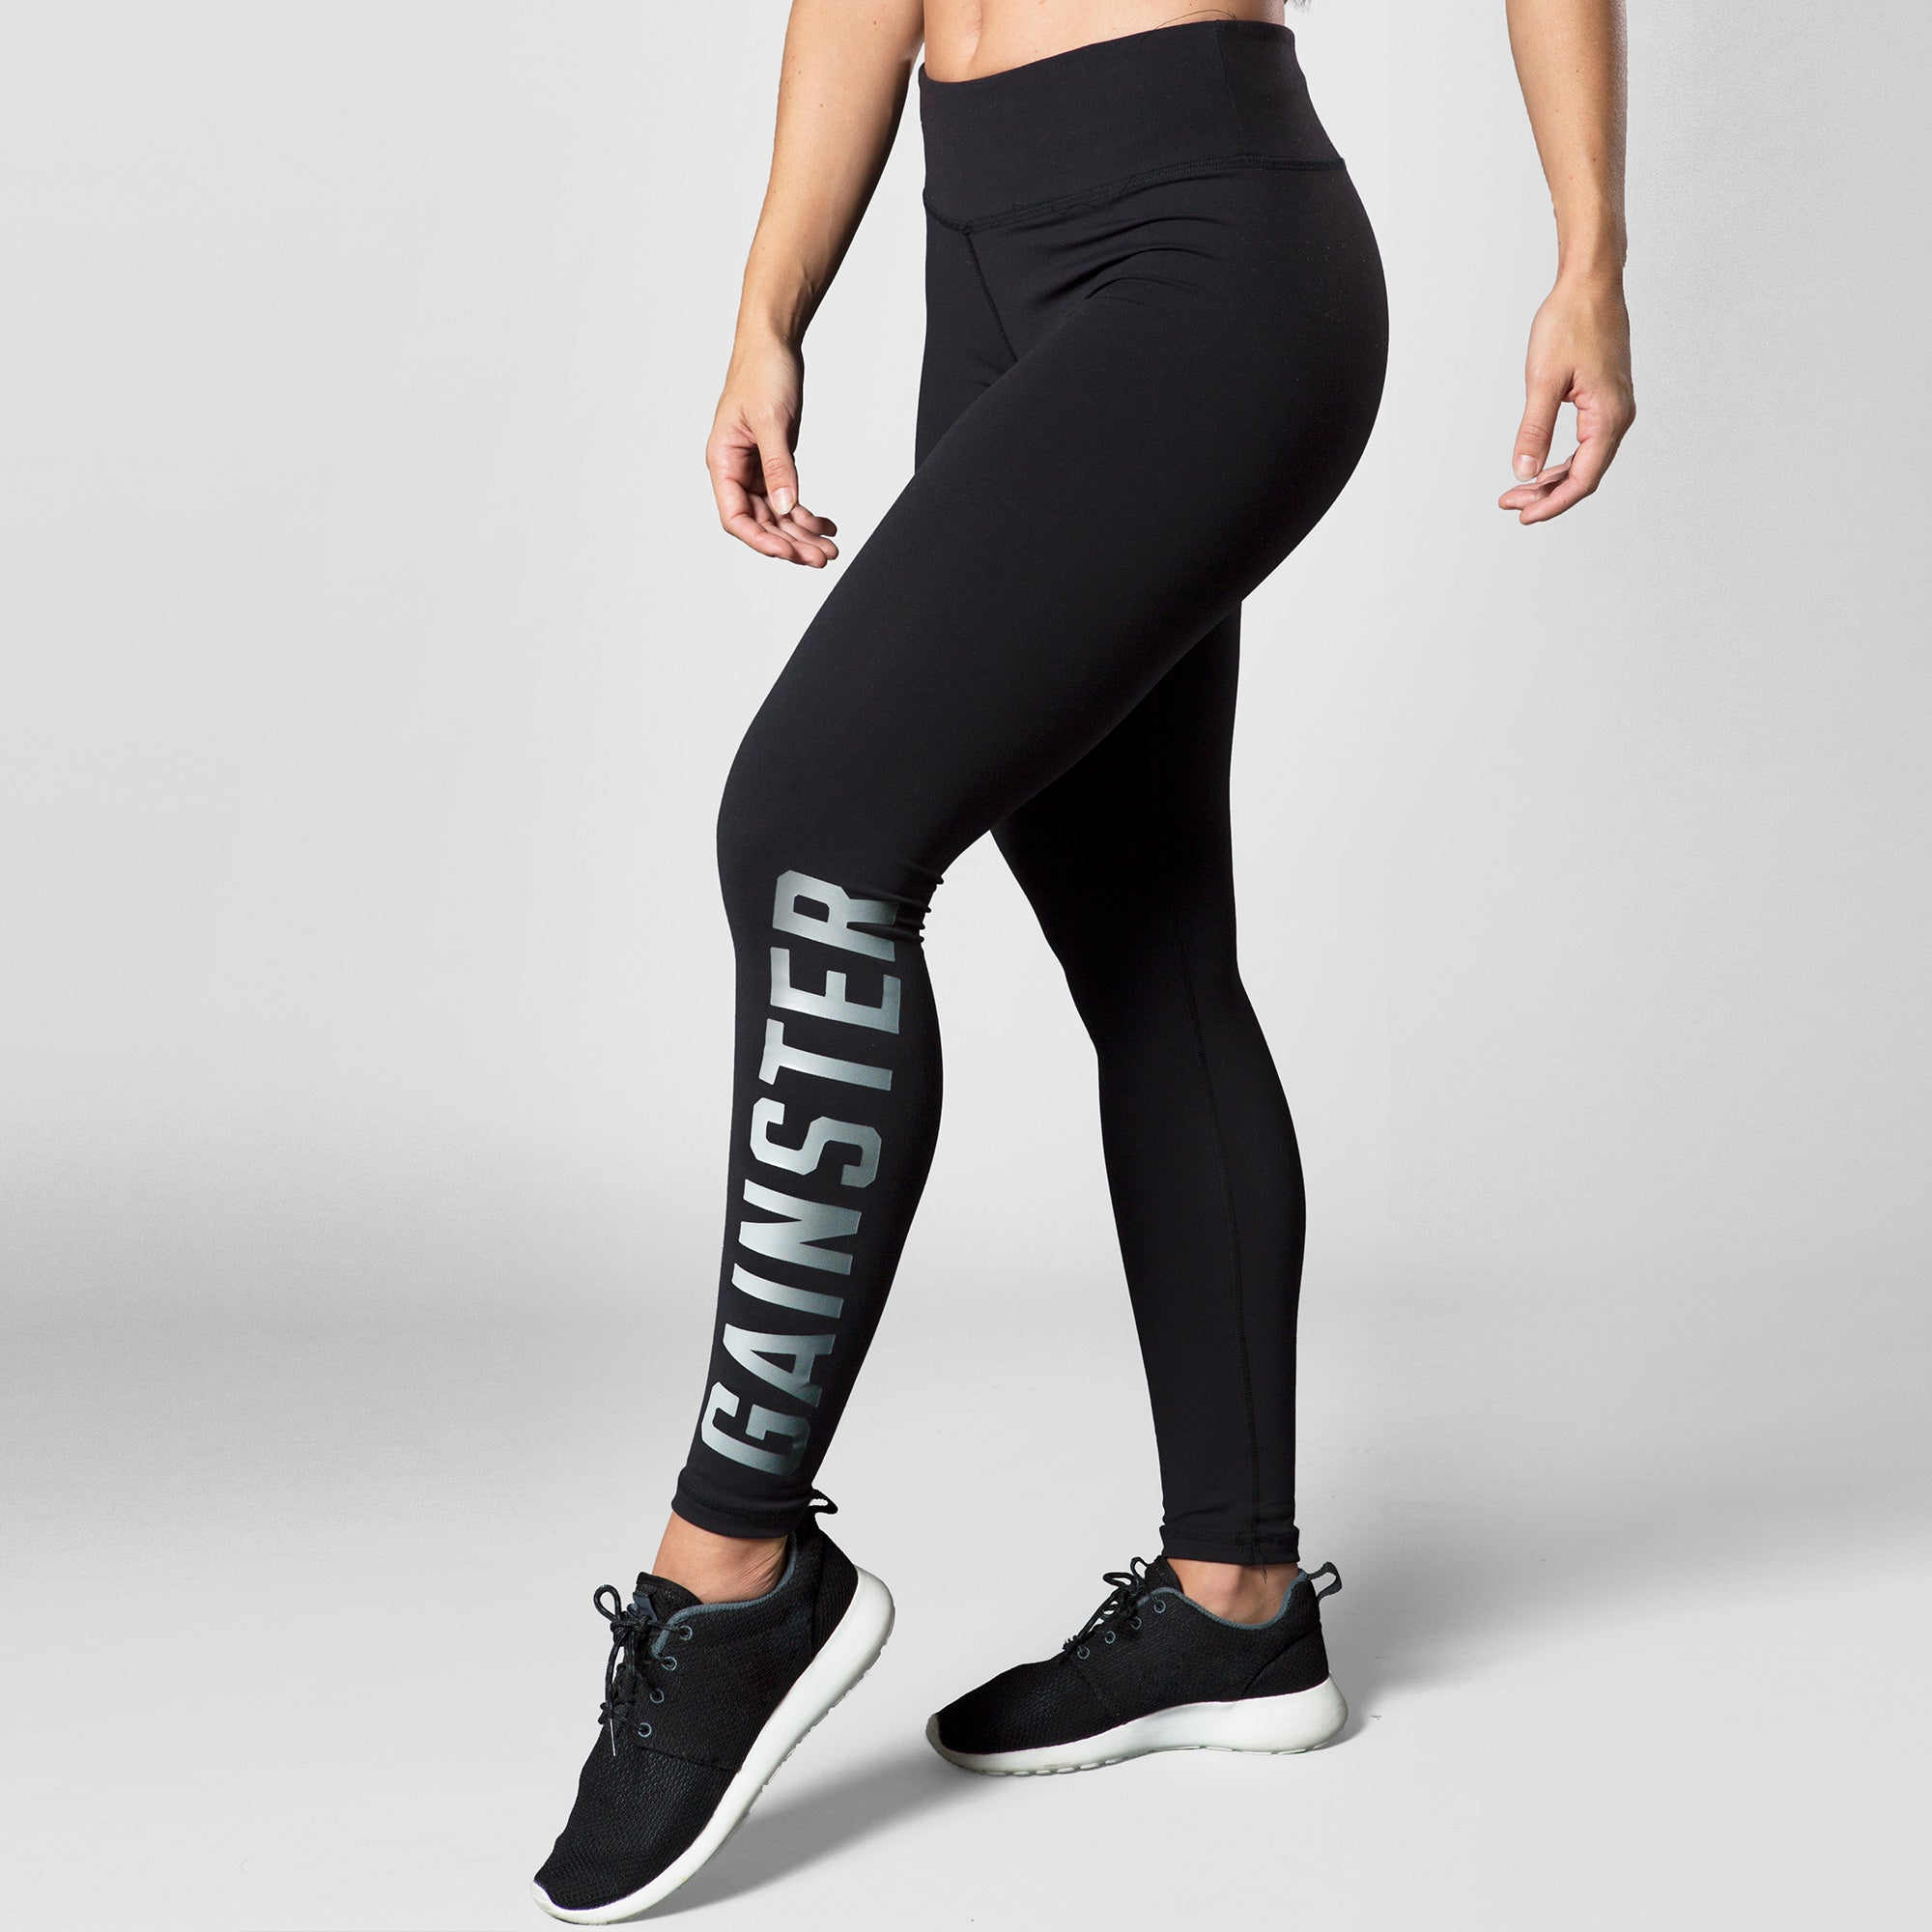 4dcd270c6 Women s GAINSTER Compression Training Tights - Black with Silver Print